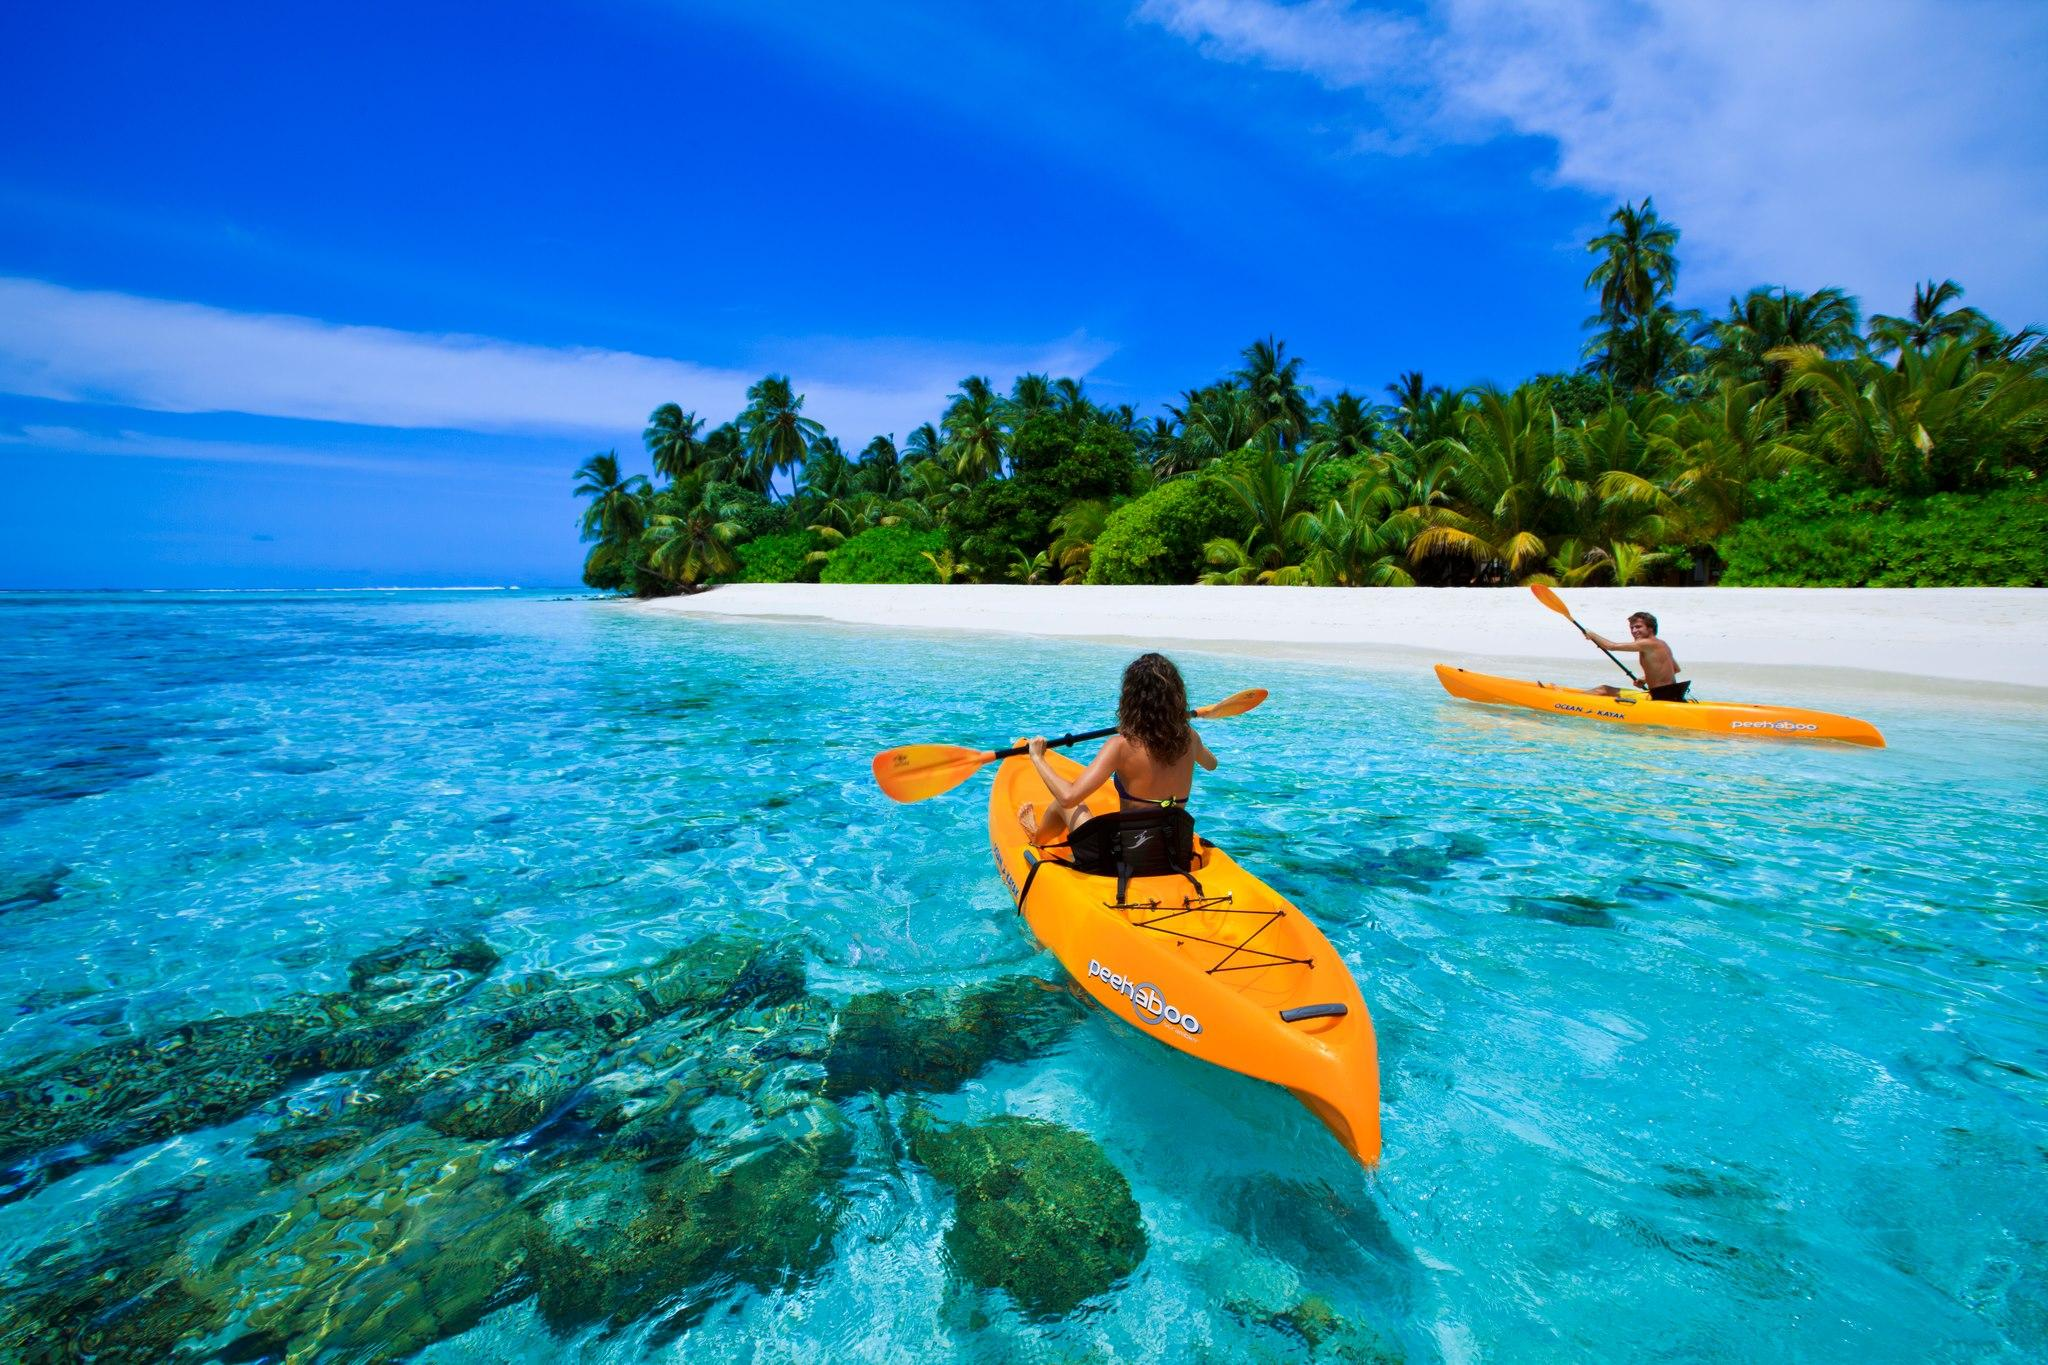 Maldives Beach Wallpaper: Why And How To Choose The Best Tour Operator In Maldives